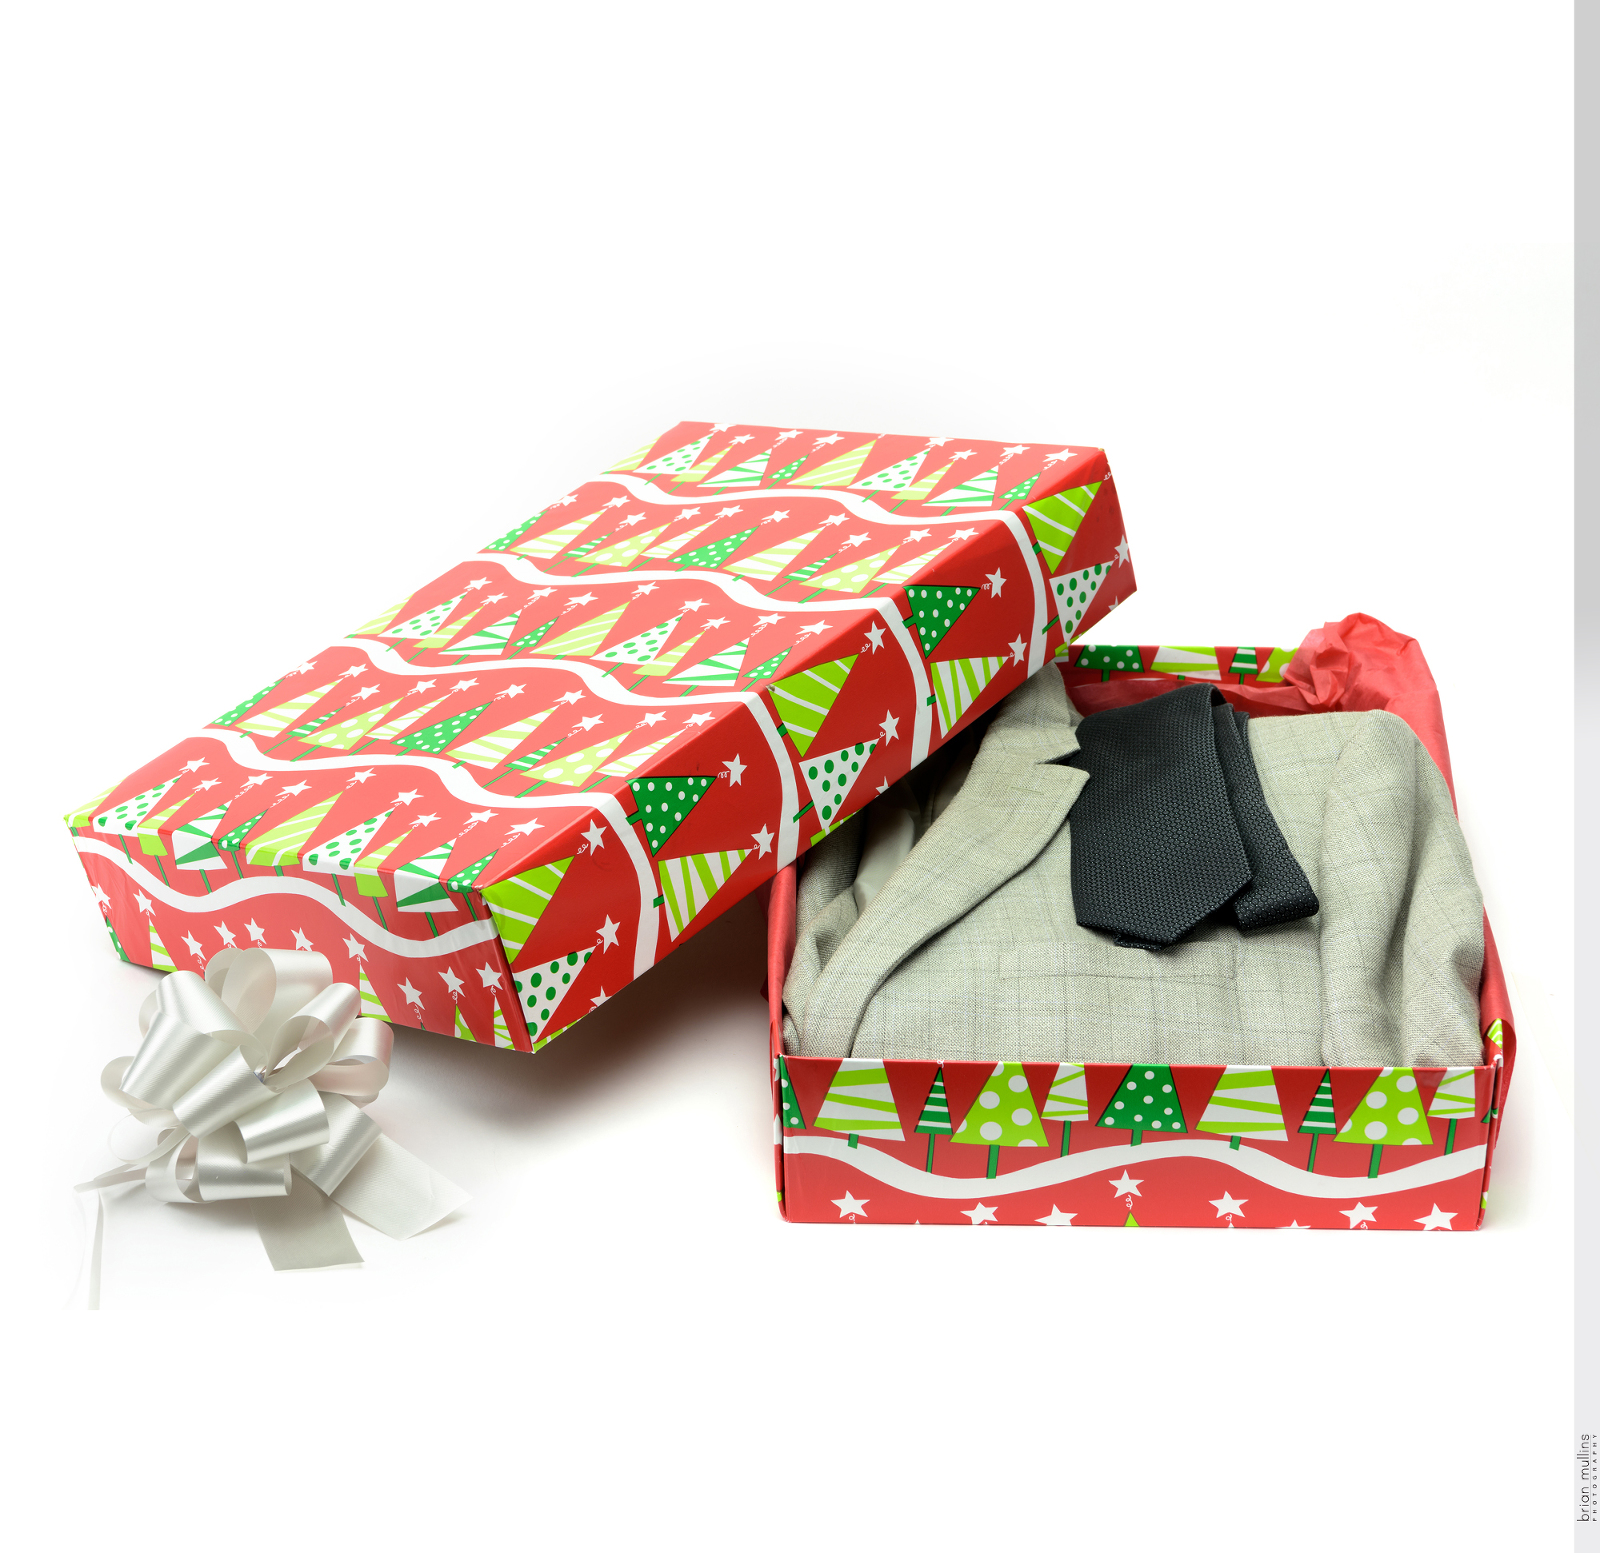 ready wrap gift box.0110%28pp w1600 h1553%29 - How product photography helps your product come alive